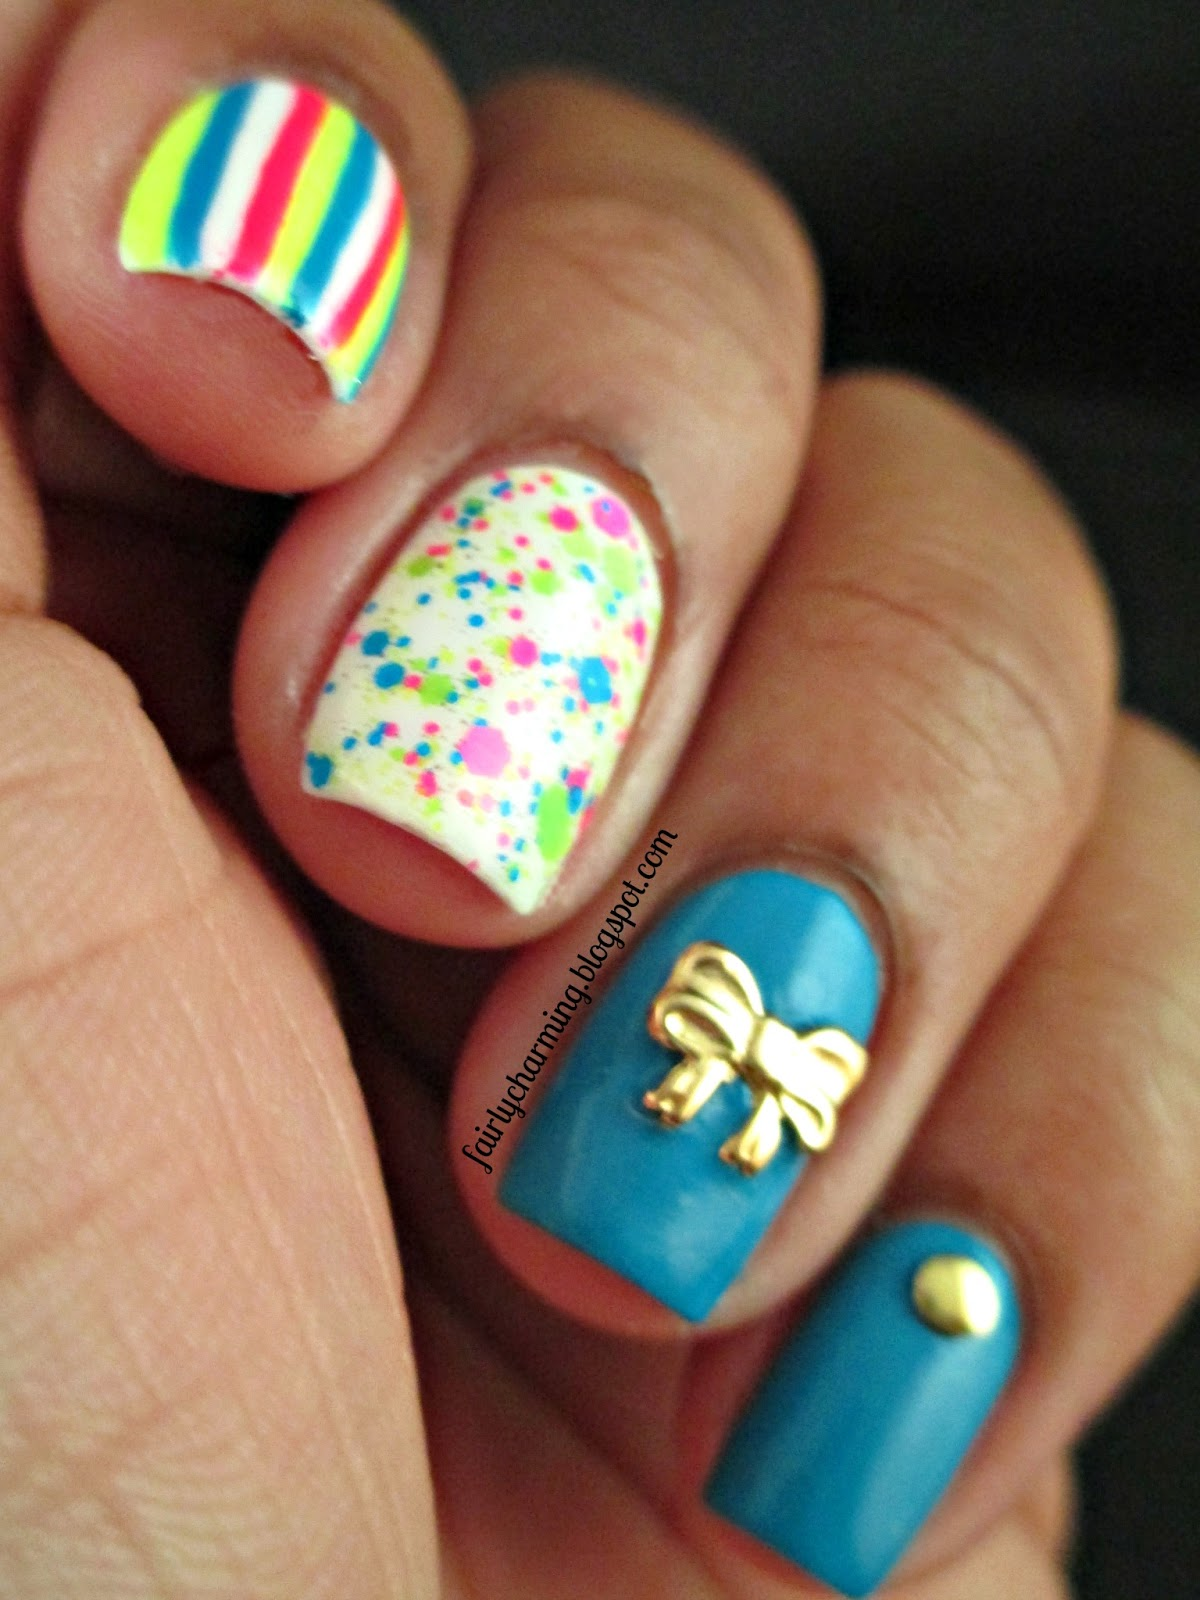 Fairly Charming: Mix 'n Match With Pipe Dream Polish